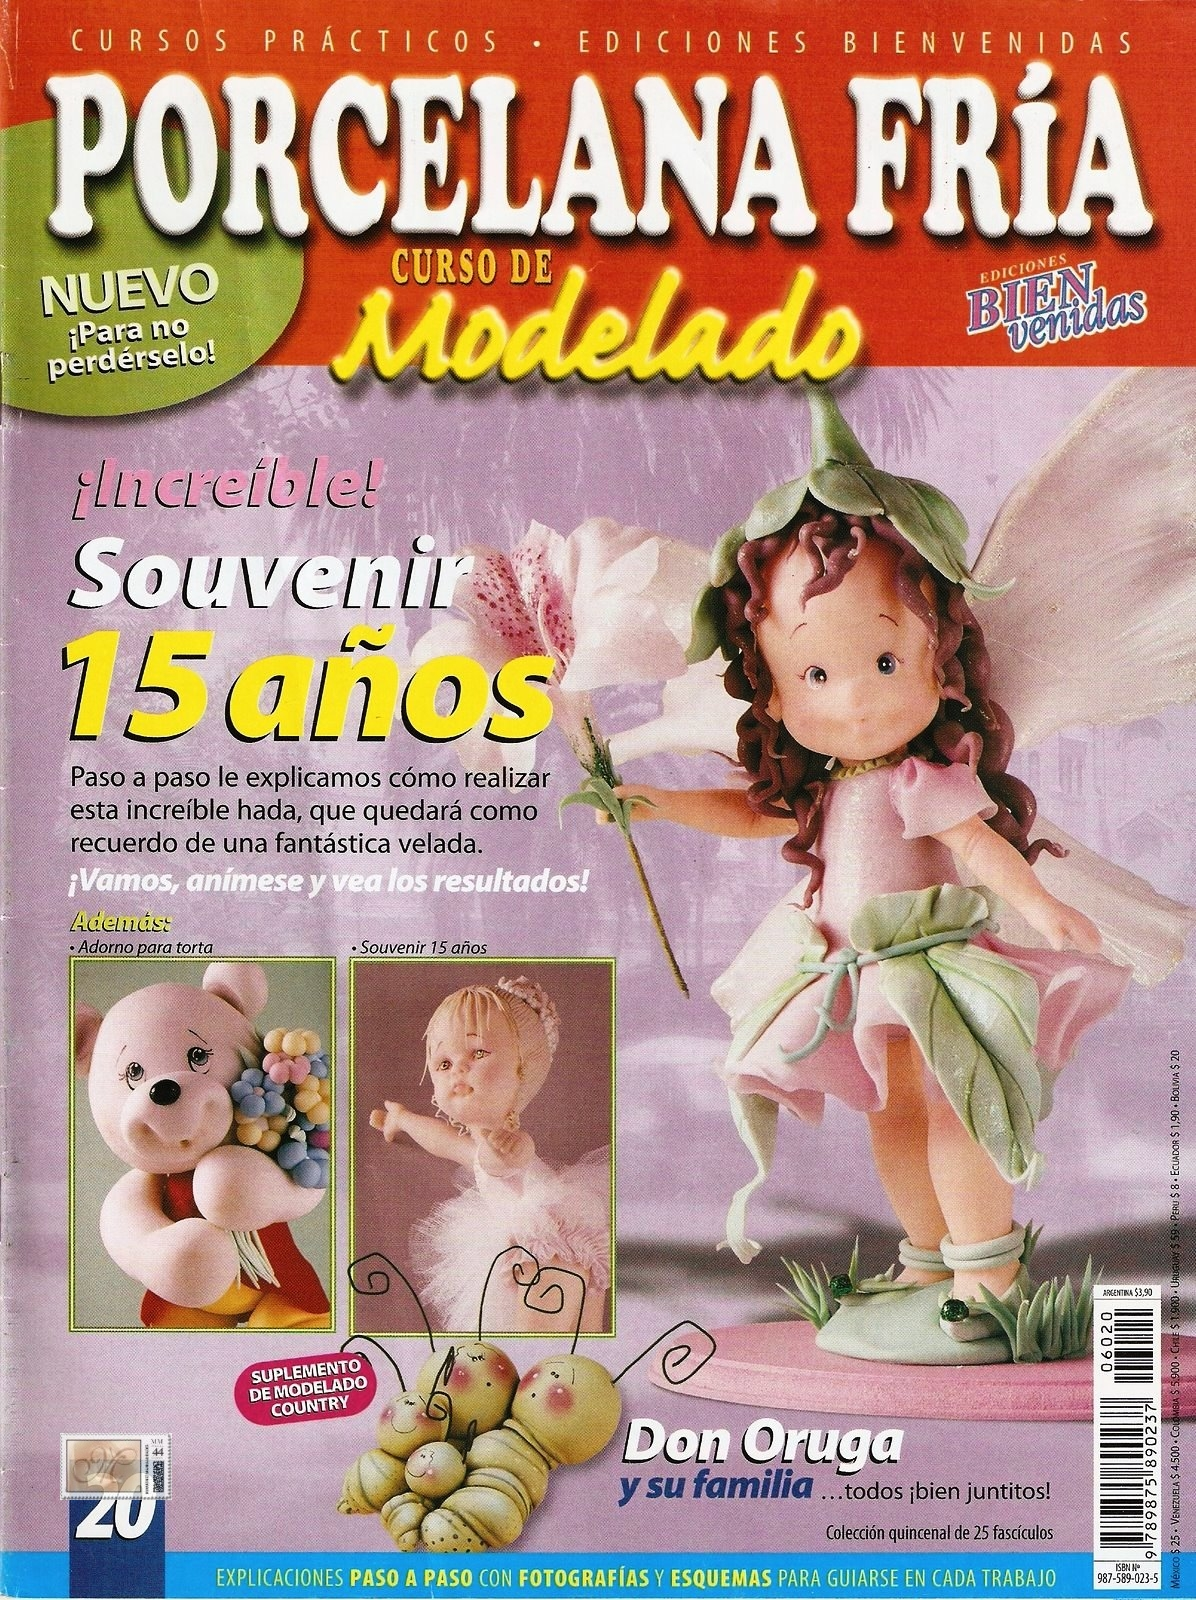 Revista: Porcelana fría No. 20